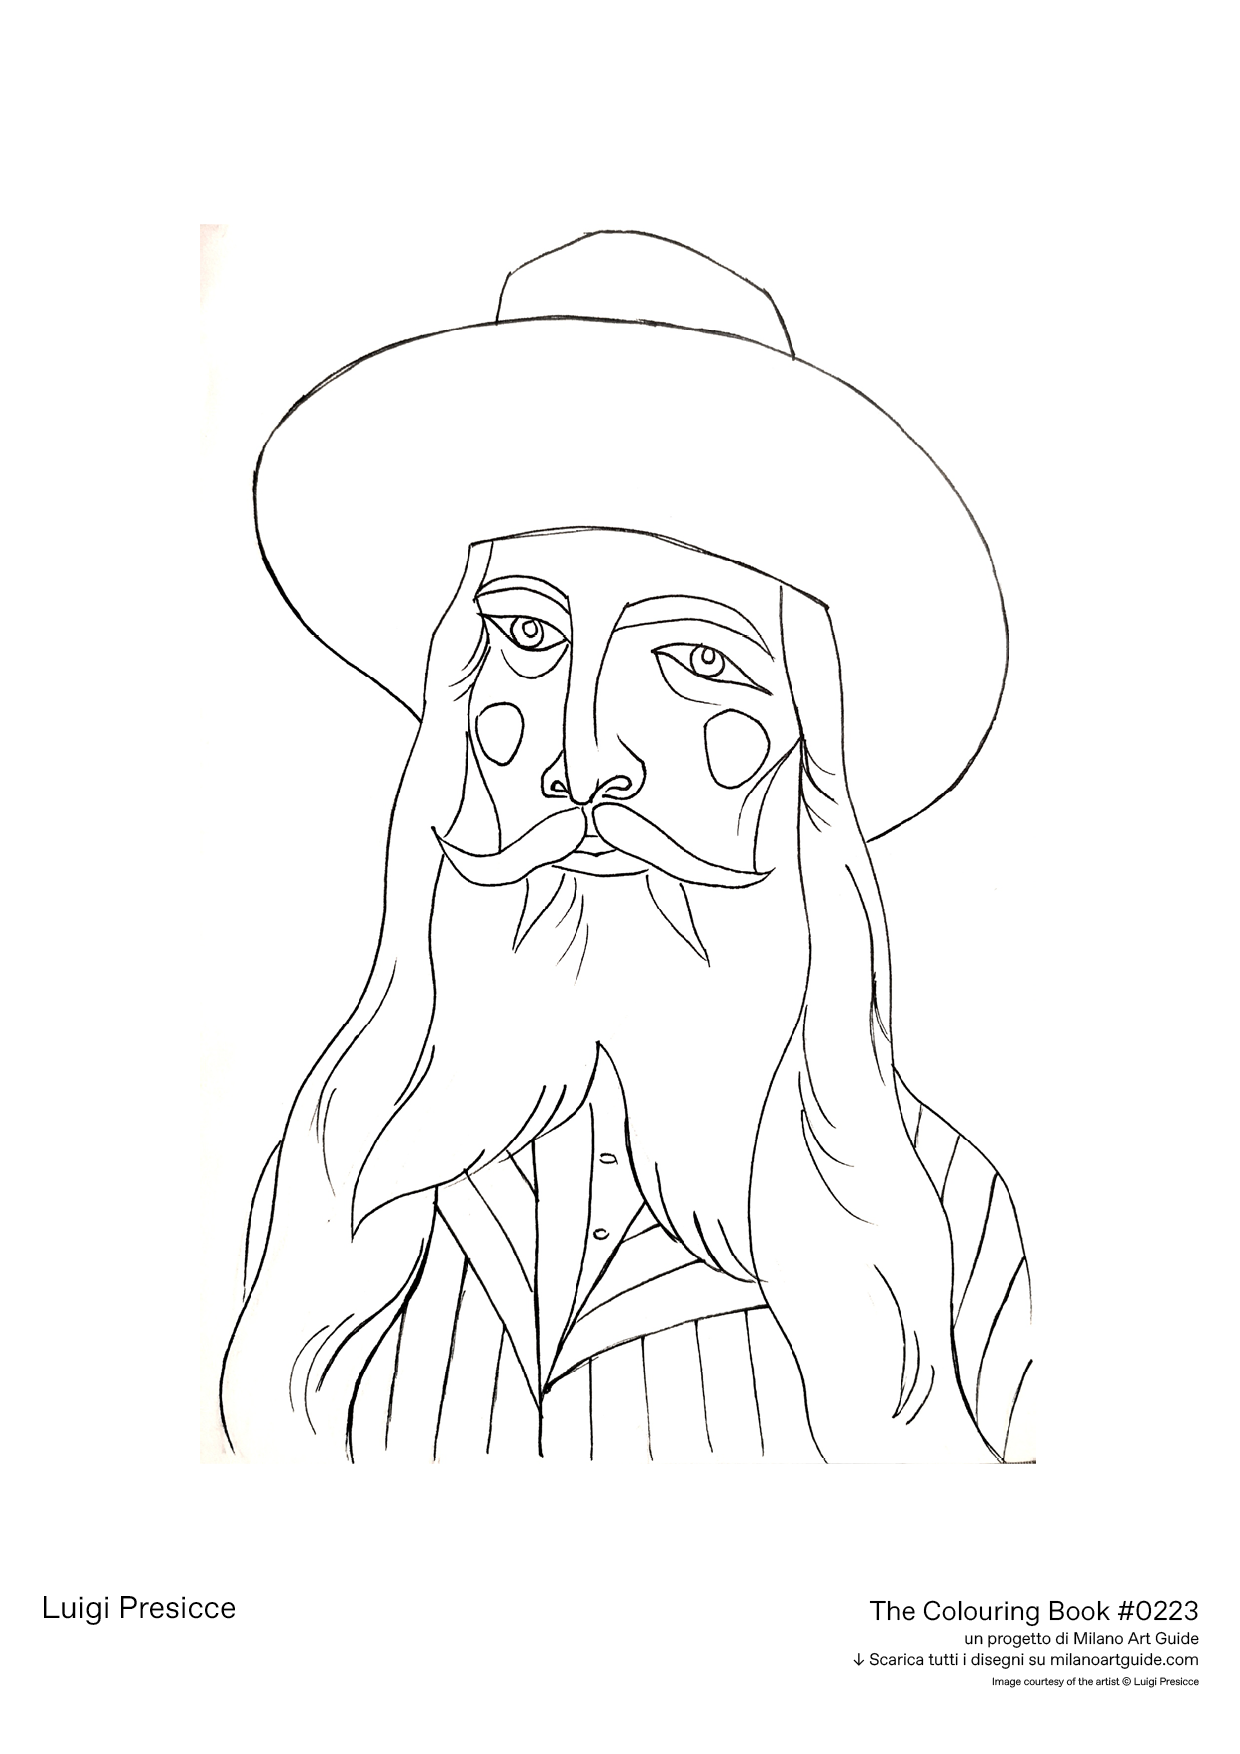 223_LuigiPresicce_THECOLOURINGBOOK_MILANOARTGUIDE.png